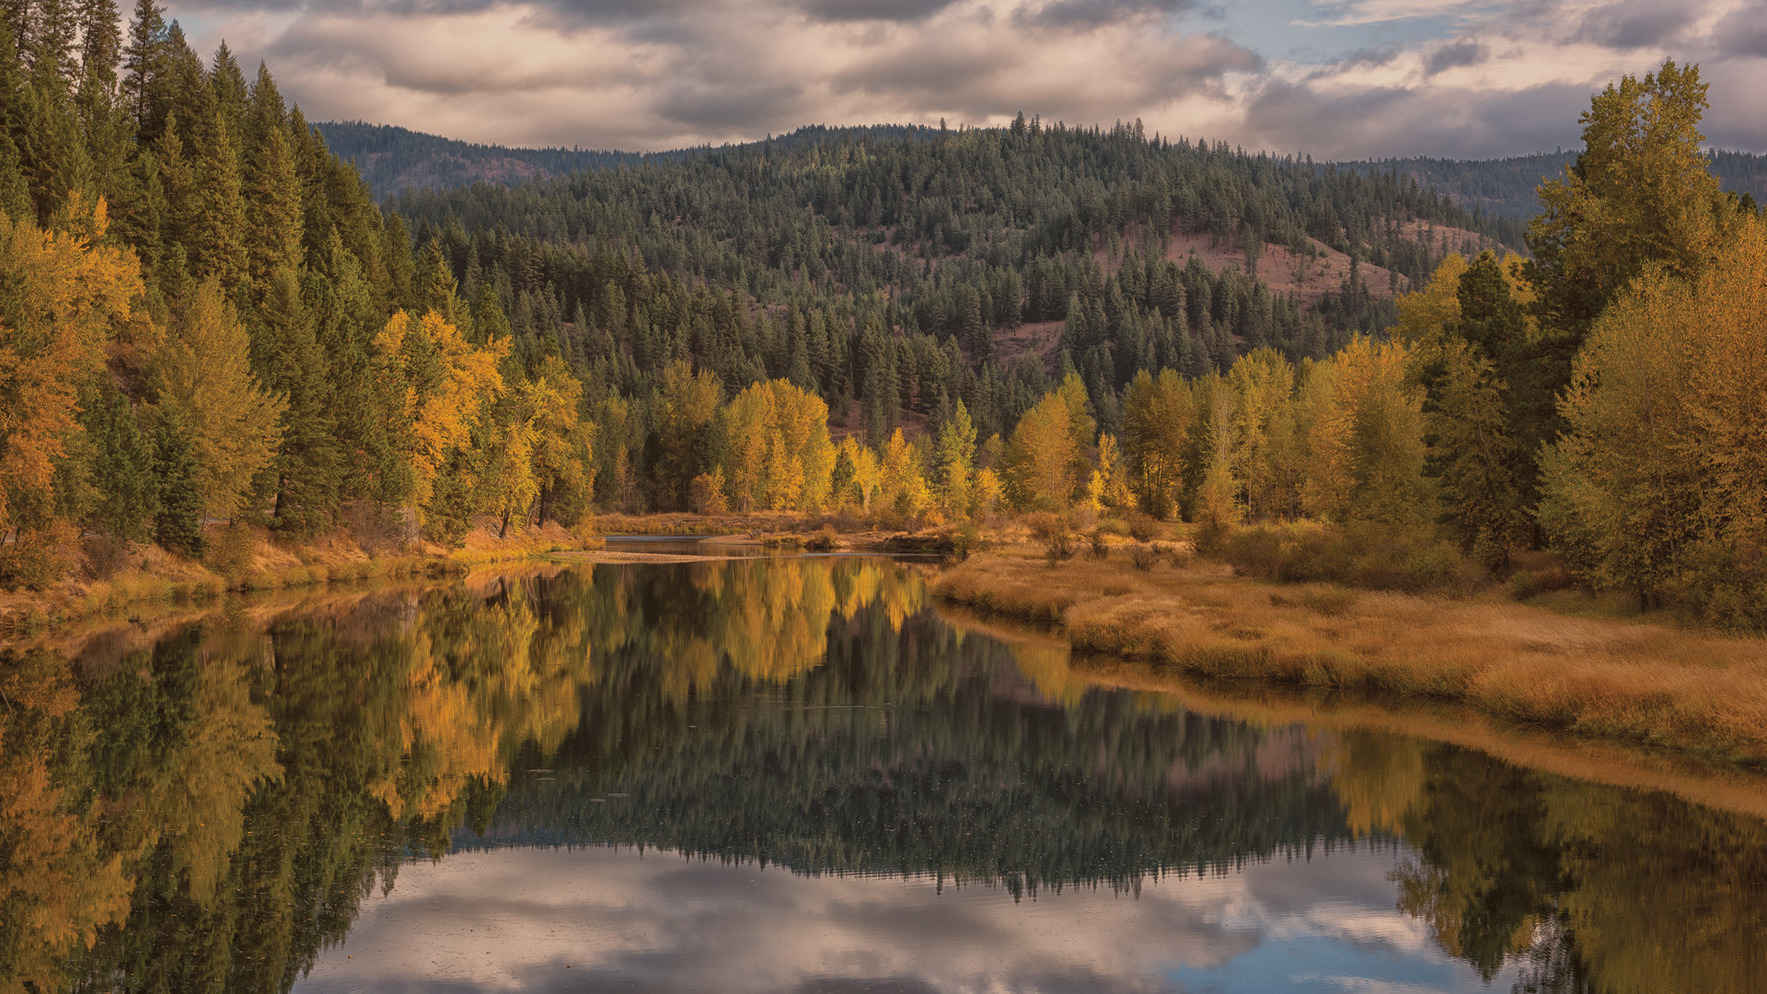 Together, we can make Idaho a beautiful place again for everyone.  image